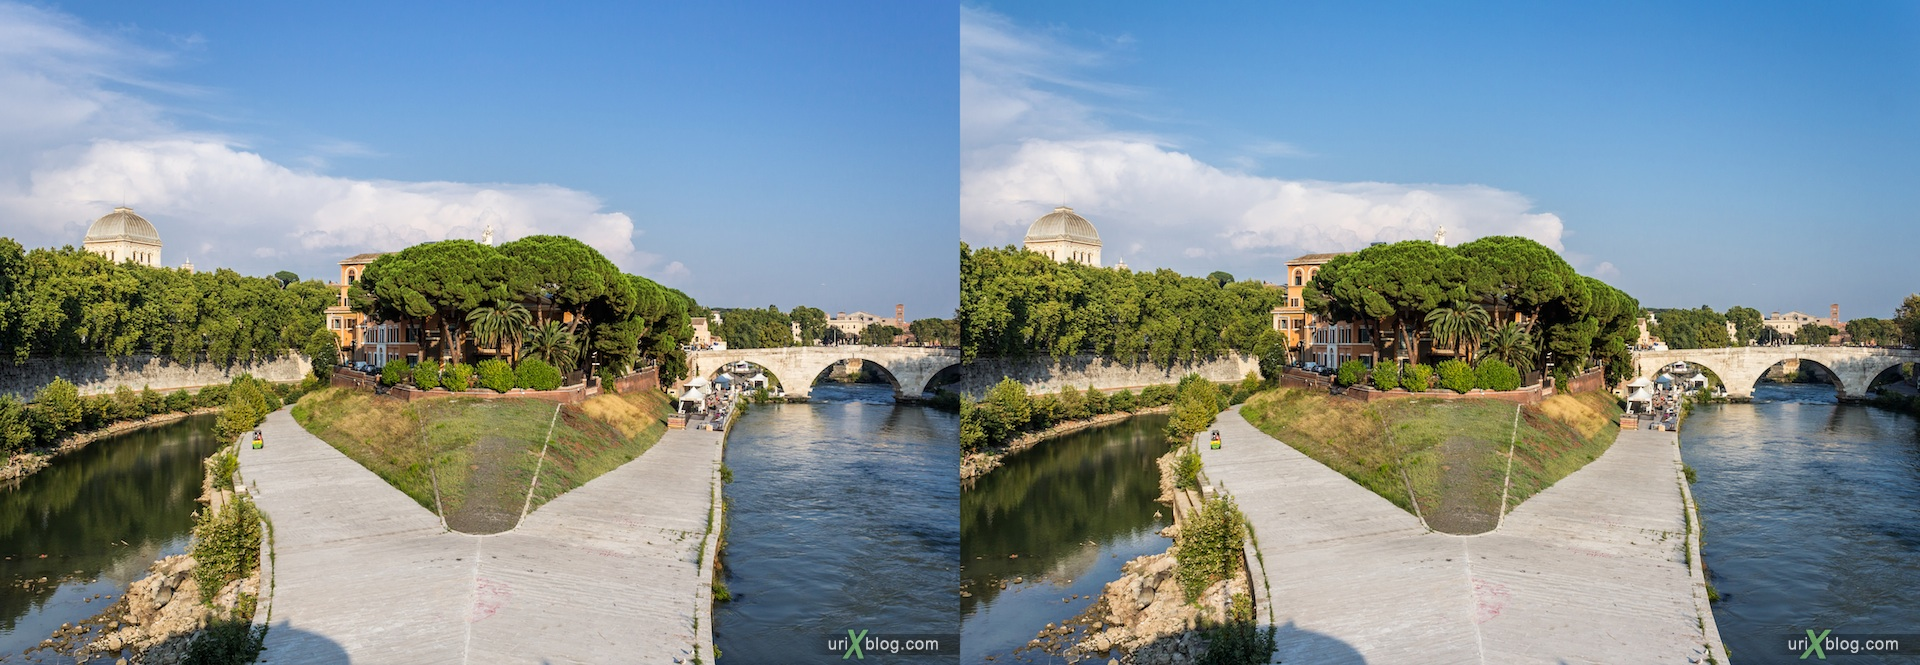 2012, Ponte Garibaldi bridge, Tiber island, Tiber river, 3D, stereo pair, cross-eyed, crossview, cross view stereo pair